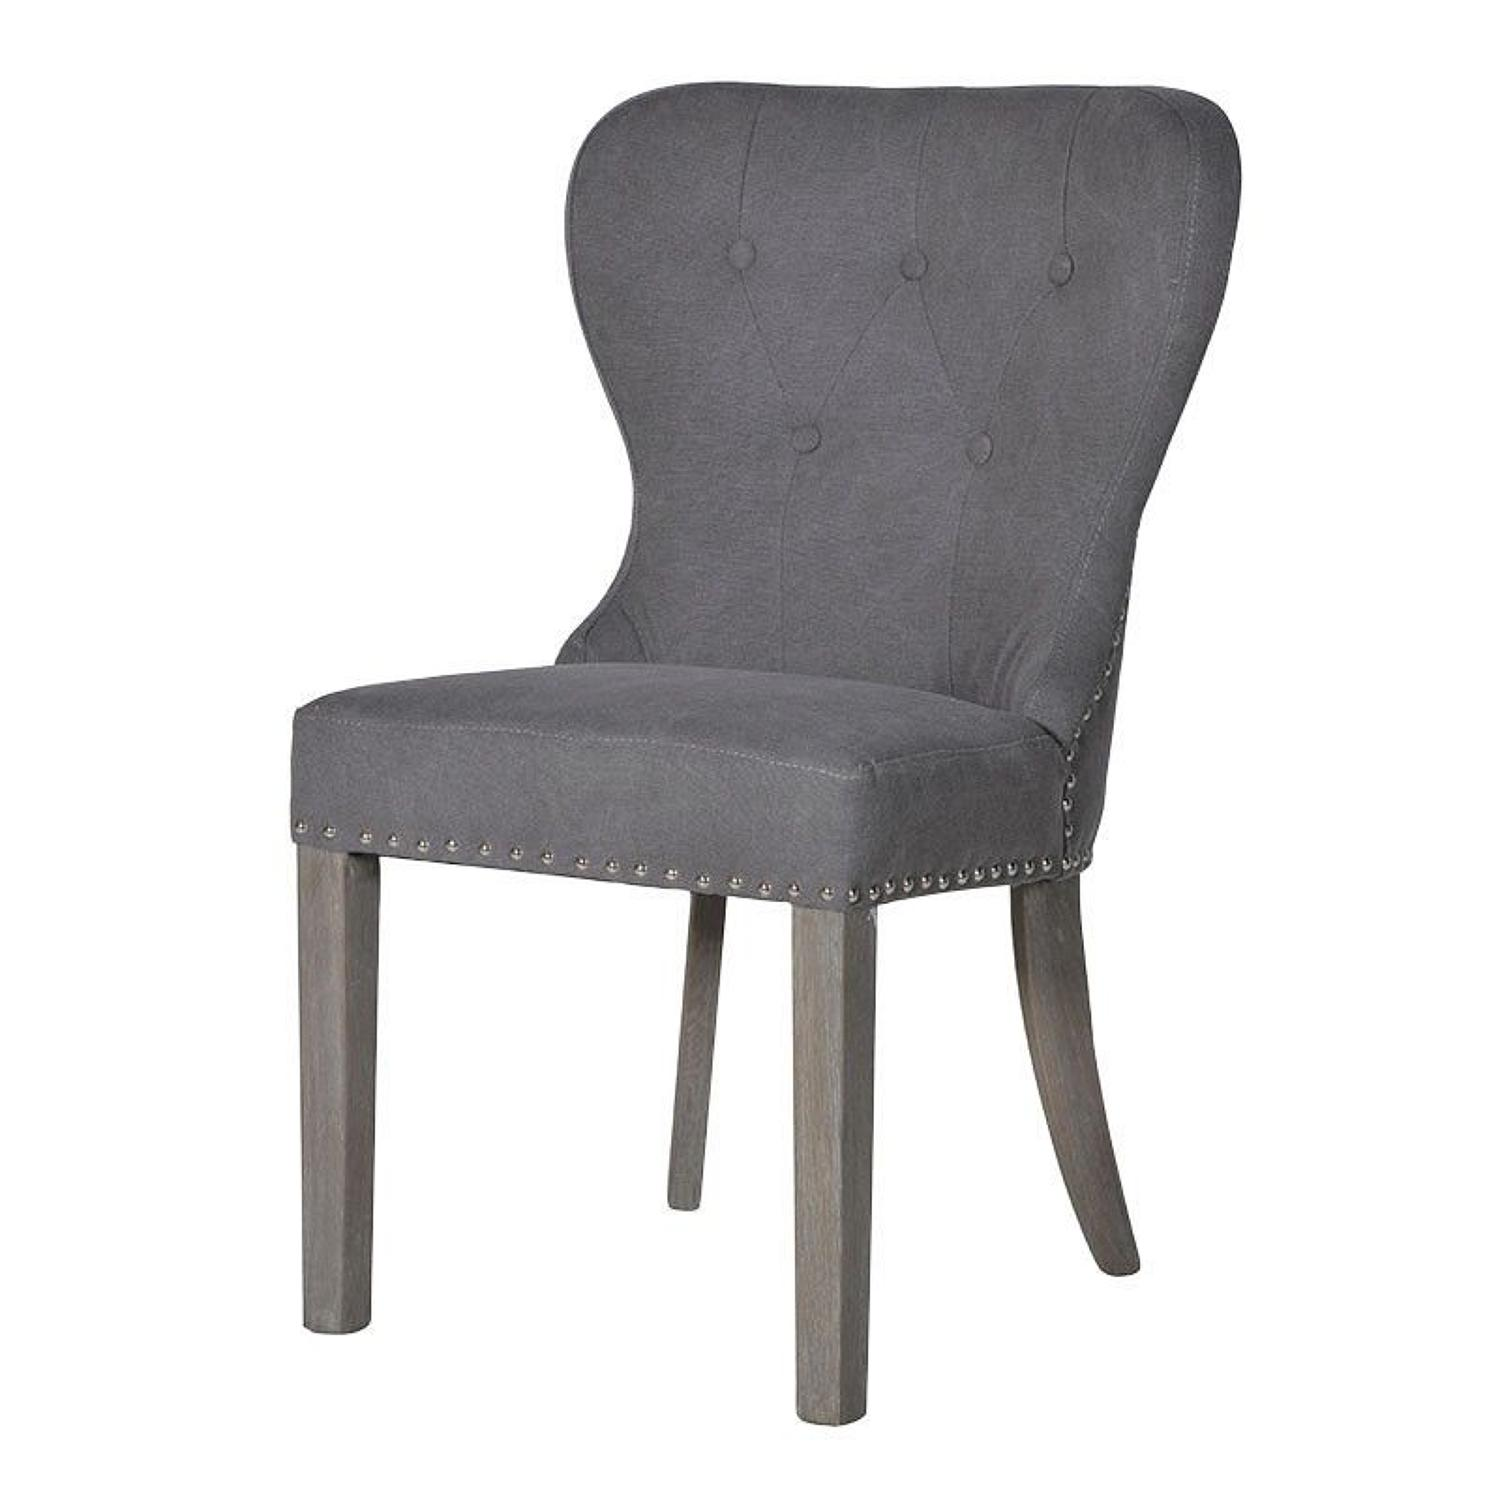 Button back grey dining chair with feature studding.